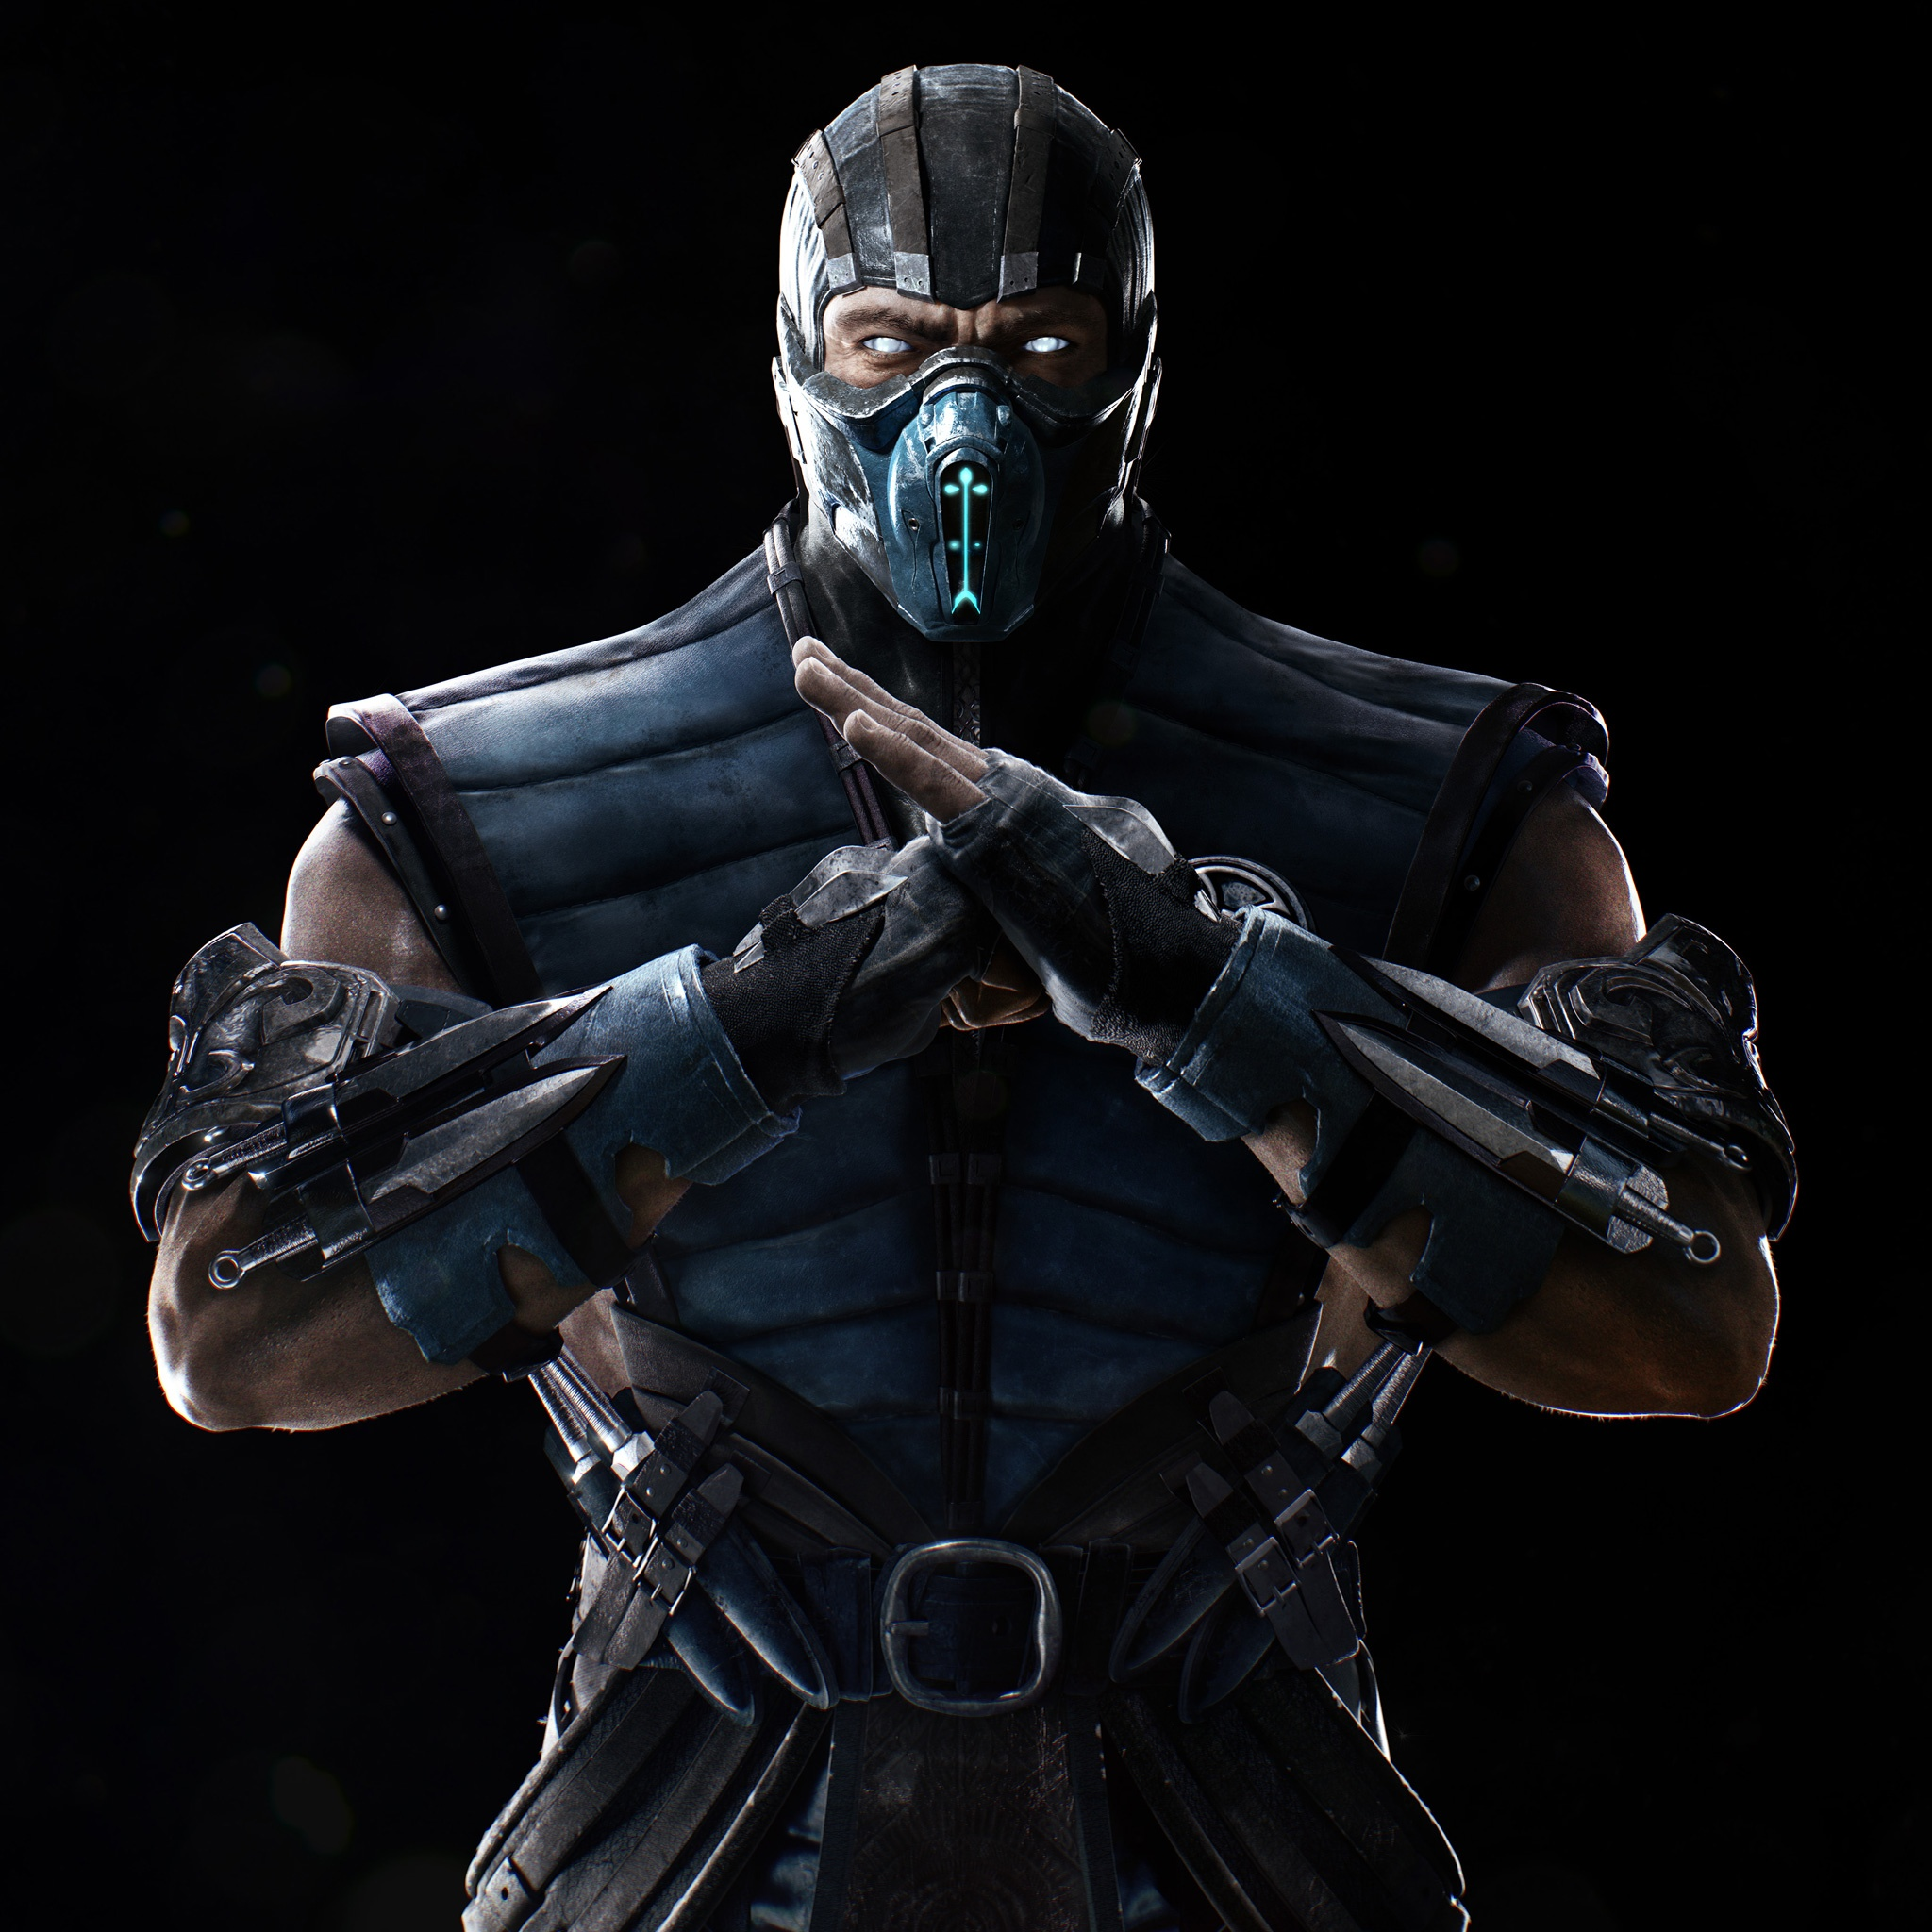 Mortal Kombat X Sub Zero 4k 5k Wallpapers In Jpg Format For